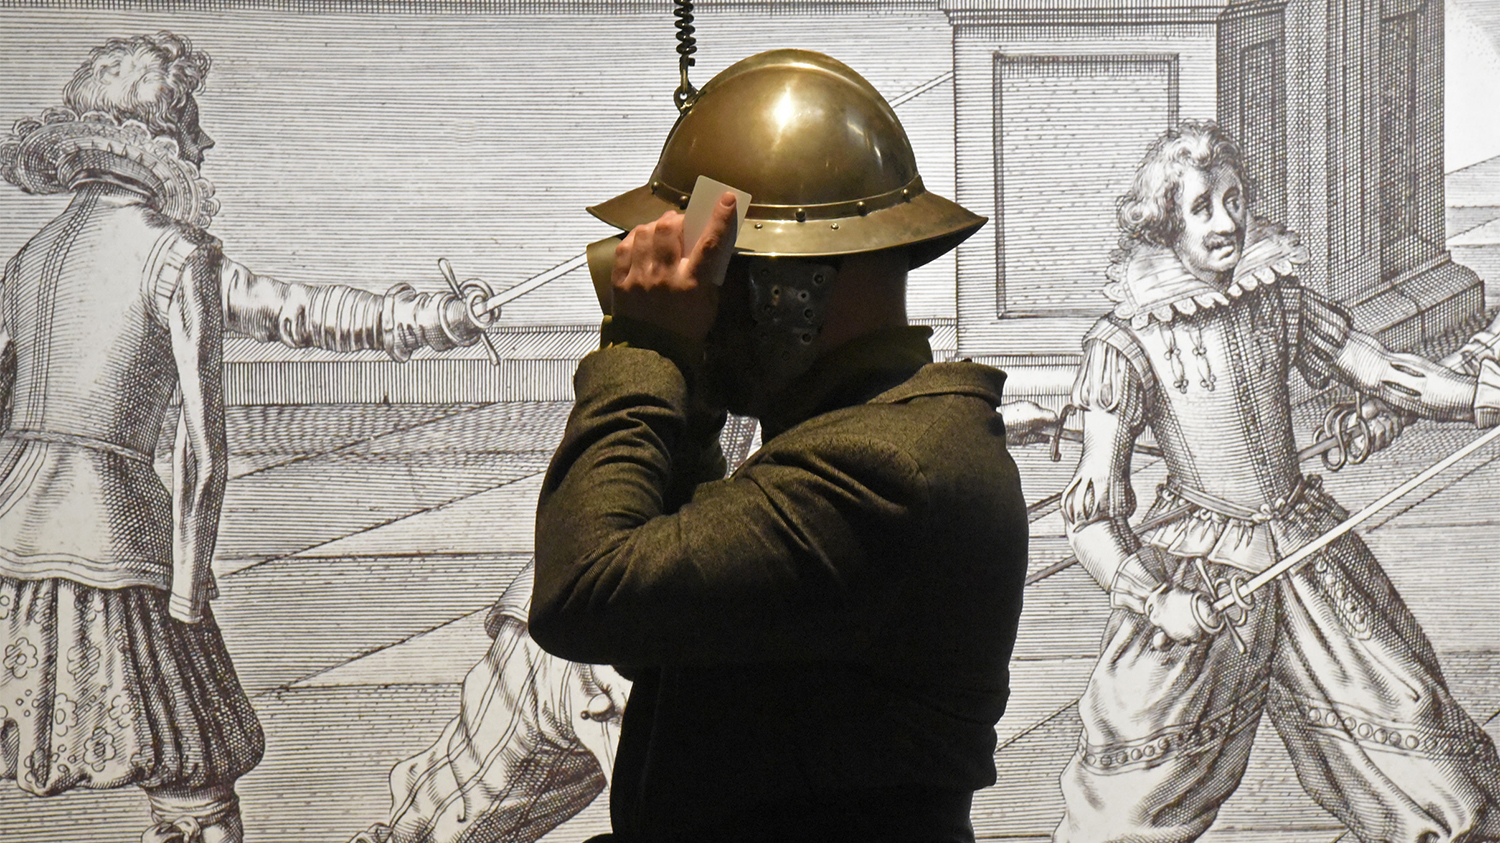 Virtual Reality Helm Tentoonstelling Willem Van Oranje